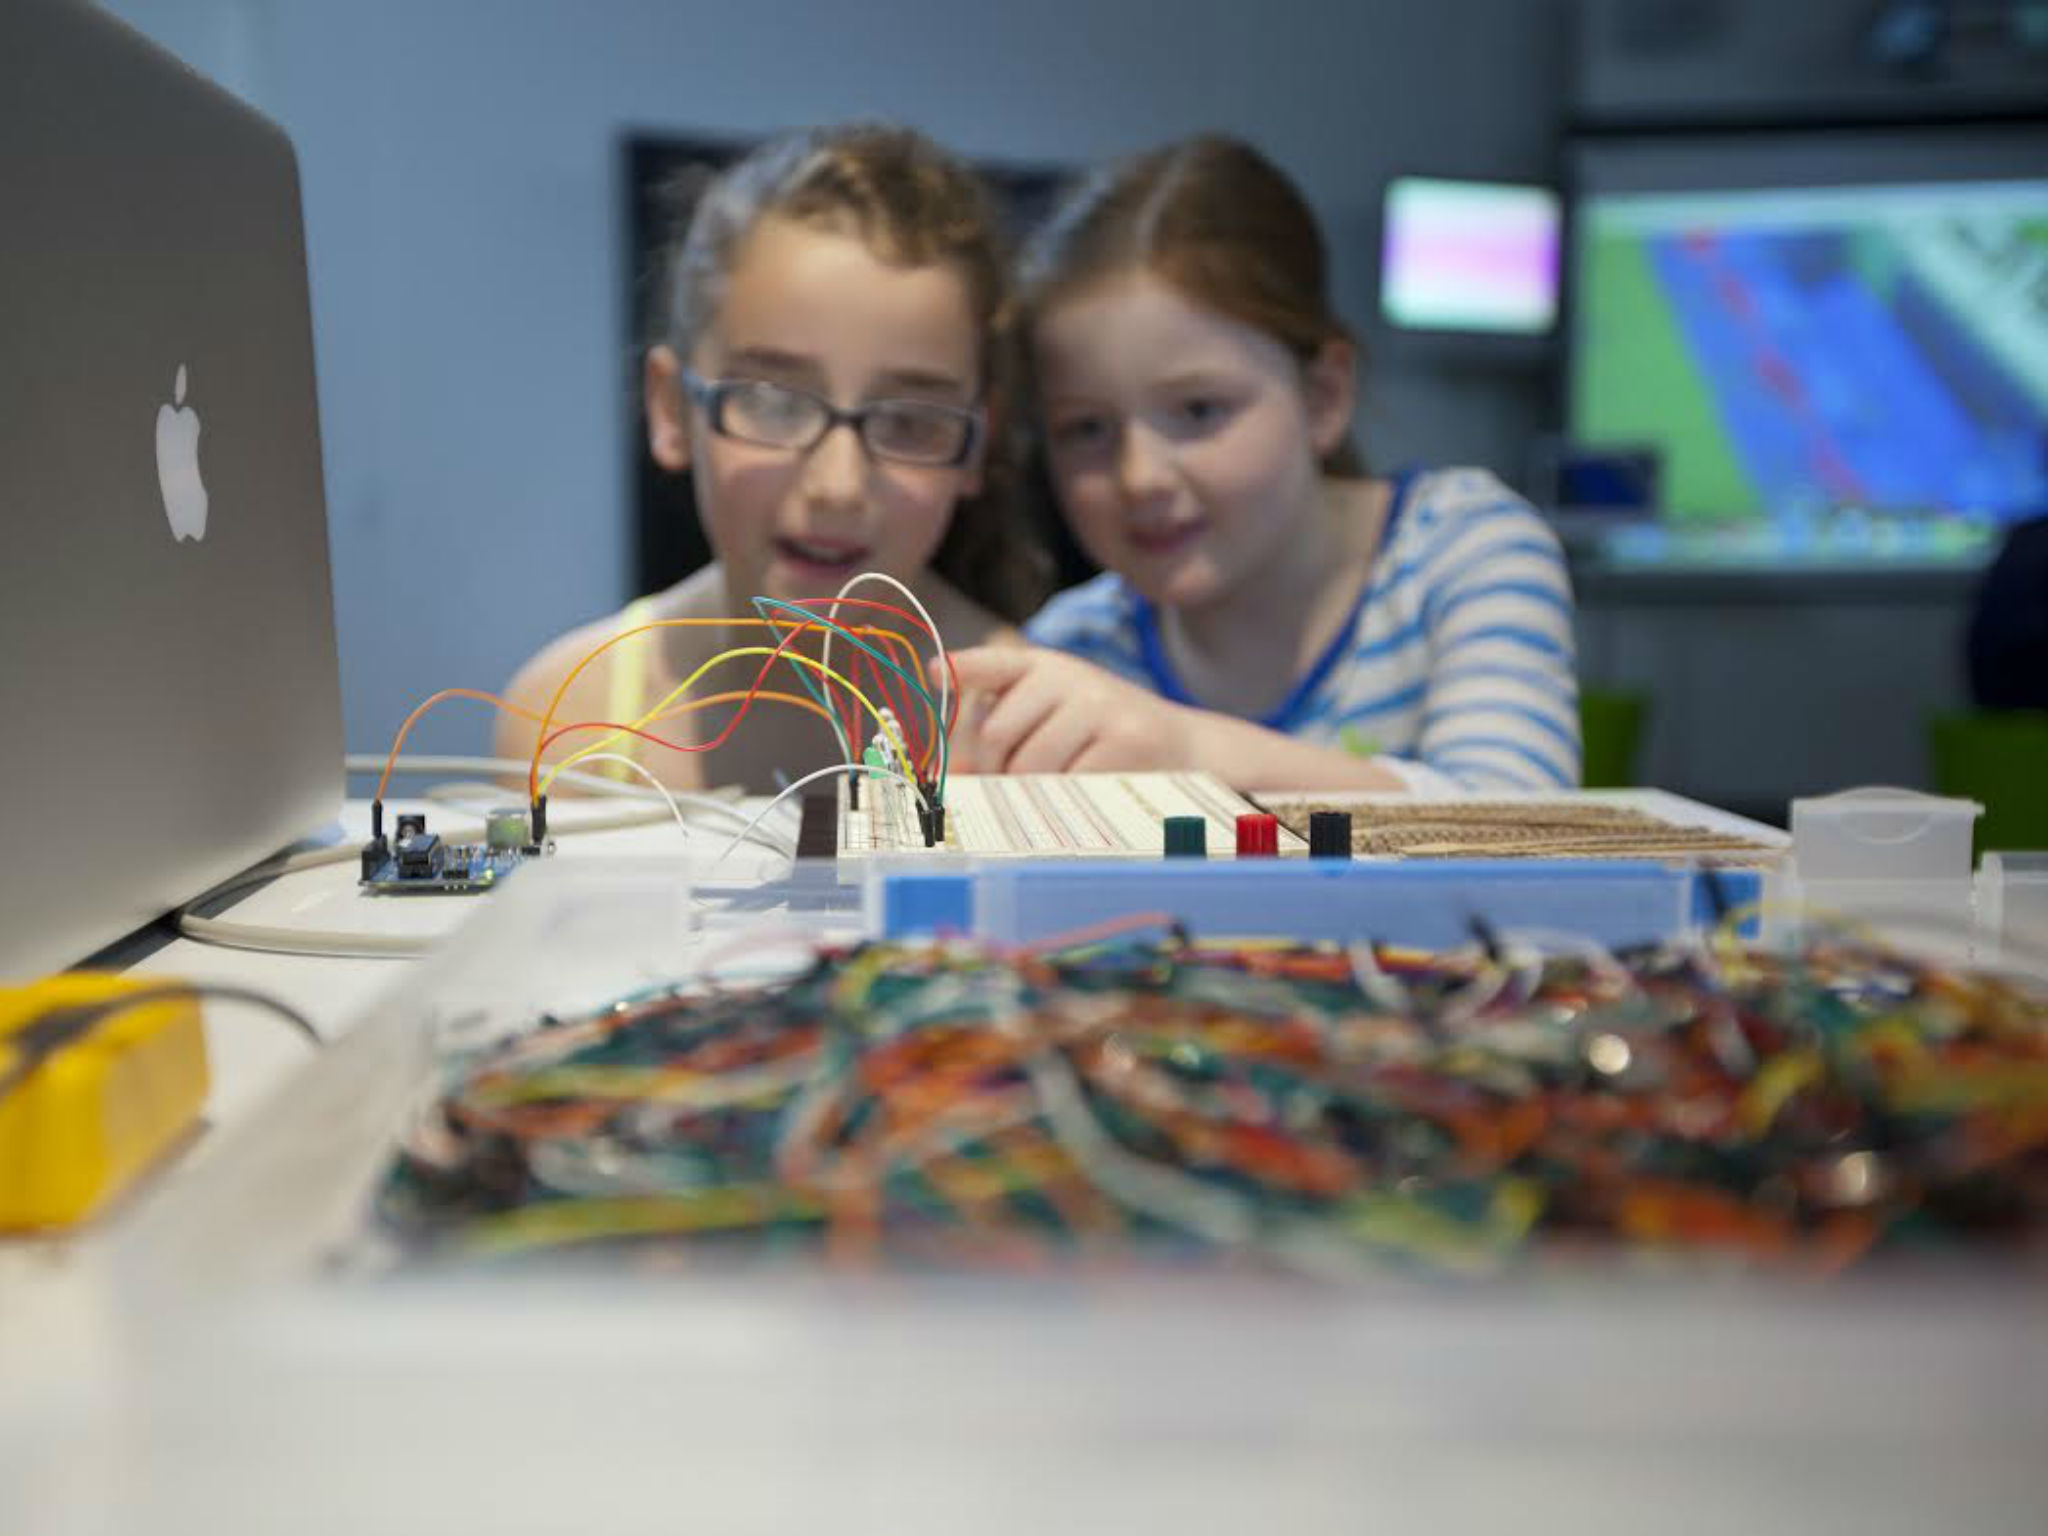 Two young girls working with electronics at the powerhouse museum